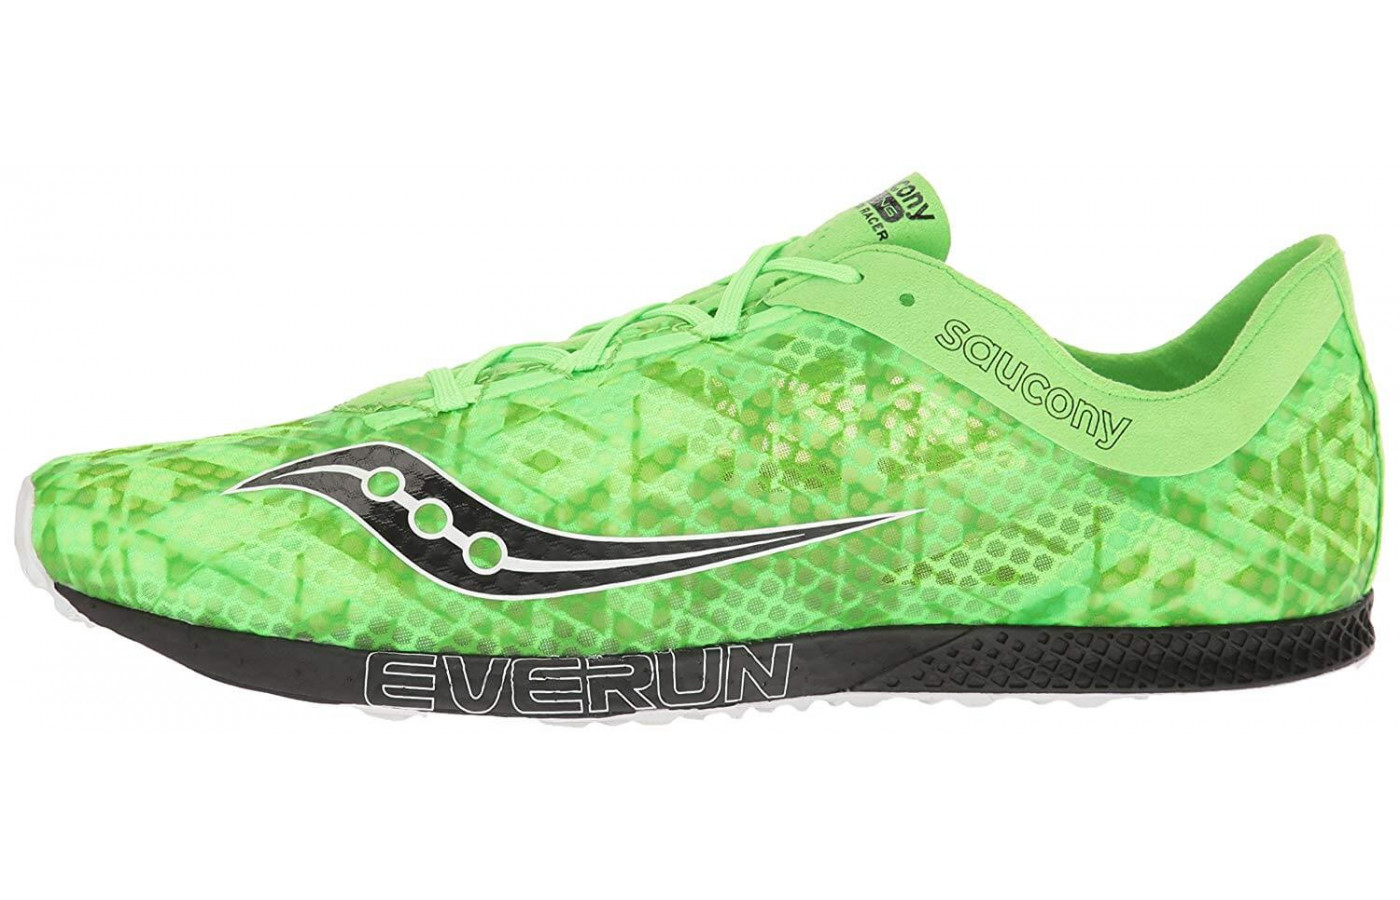 Saucony Endorphin Racer 2 side view